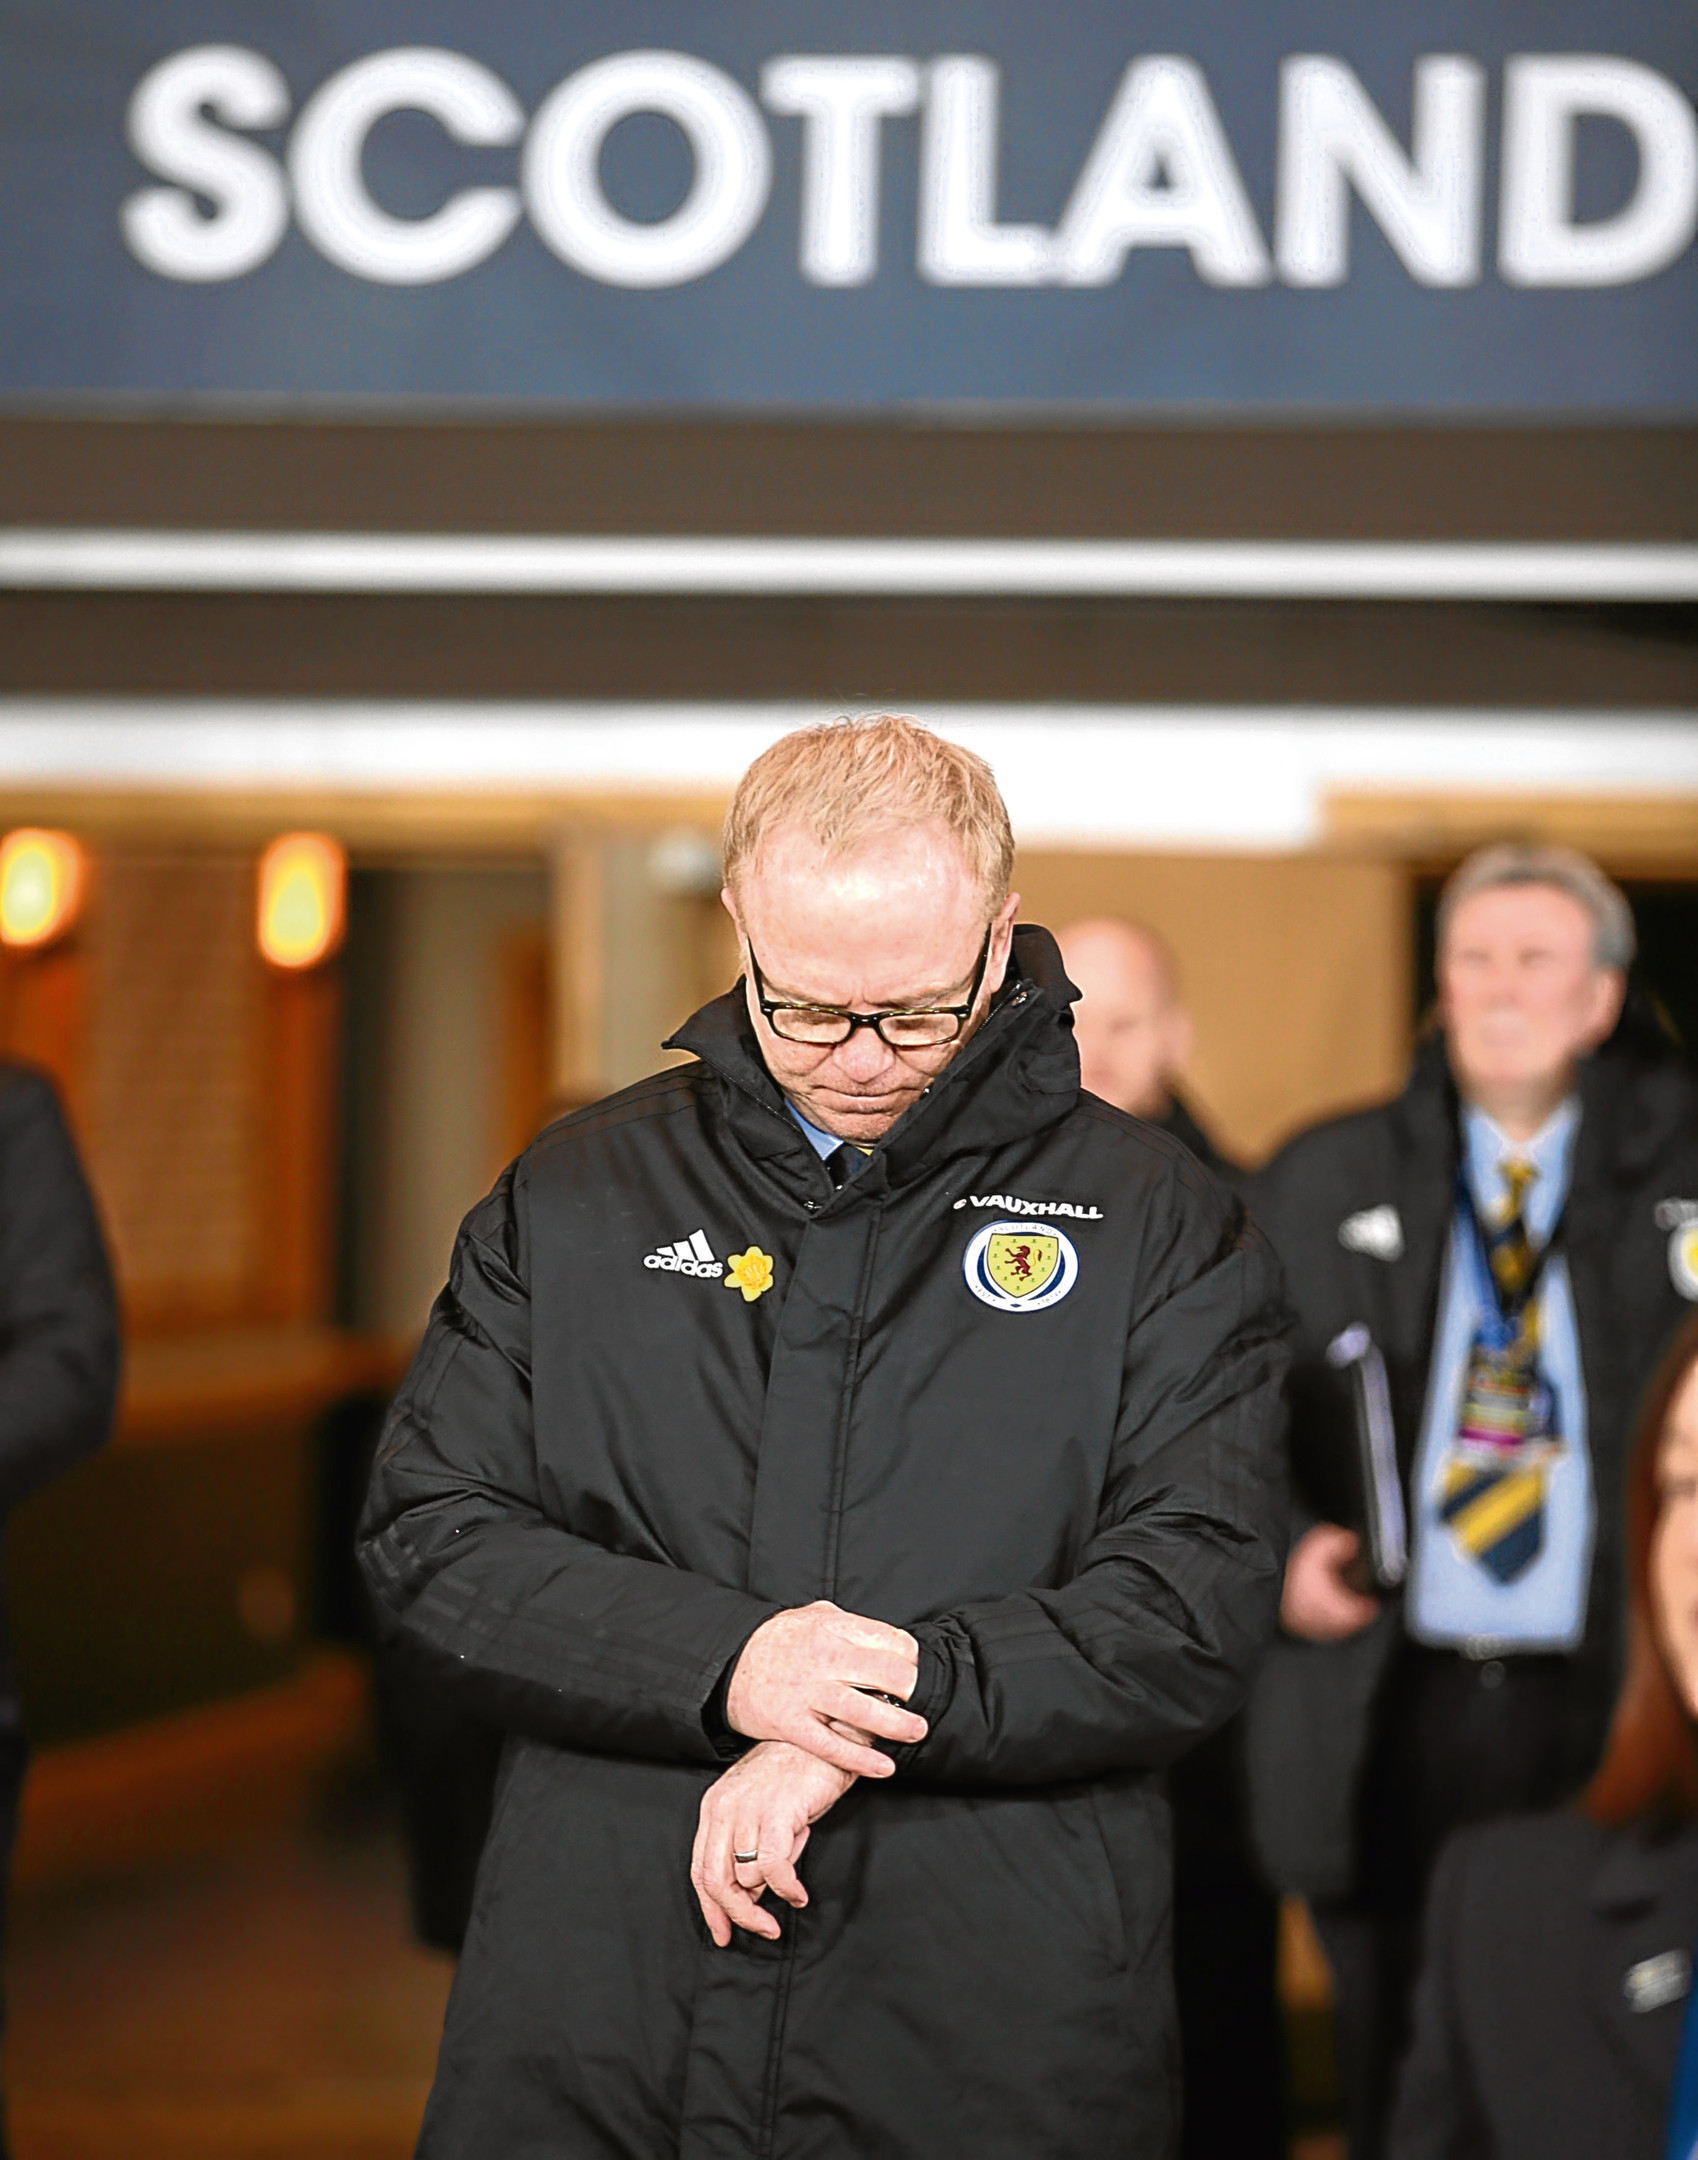 Scotland manager Alex McLeish checks his watch before the international friendly match at Hampden Park, Glasgow. PRESS ASSOCIATION Photo. Picture date: Friday March 23, 2018. See PA story SOCCER Scotland. Photo credit should read: Jane Barlow/PA Wire. RESTRICTIONS: Use subject to restrictions. Editorial use only. Commercial use only with prior written consent of the Scottish FA.